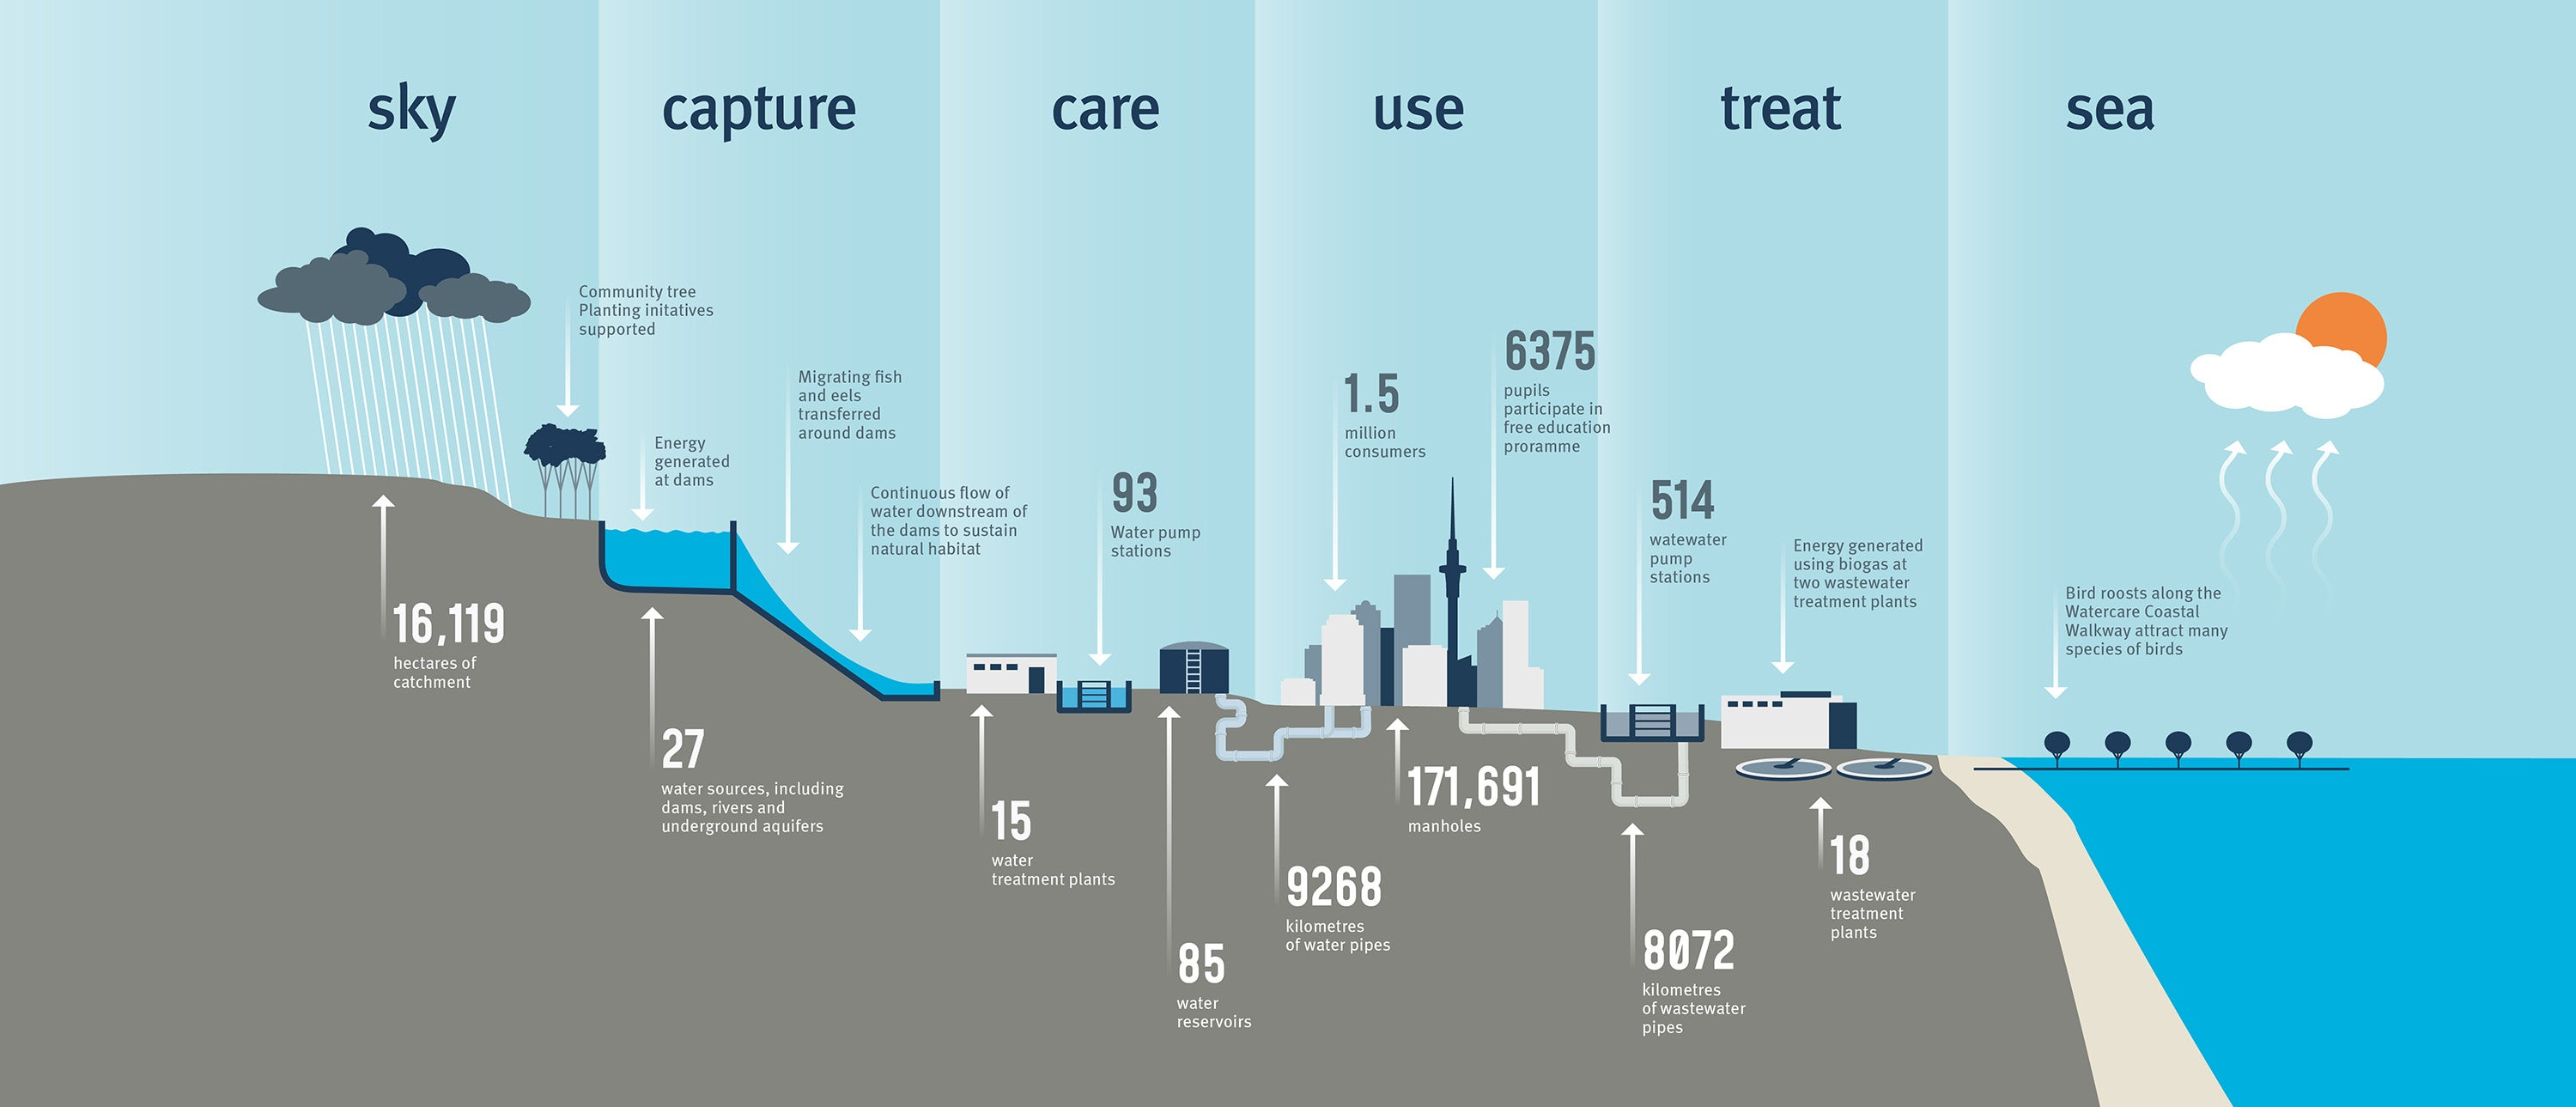 Image showing water's journey from the sky to the sea and Watercare's role in the process